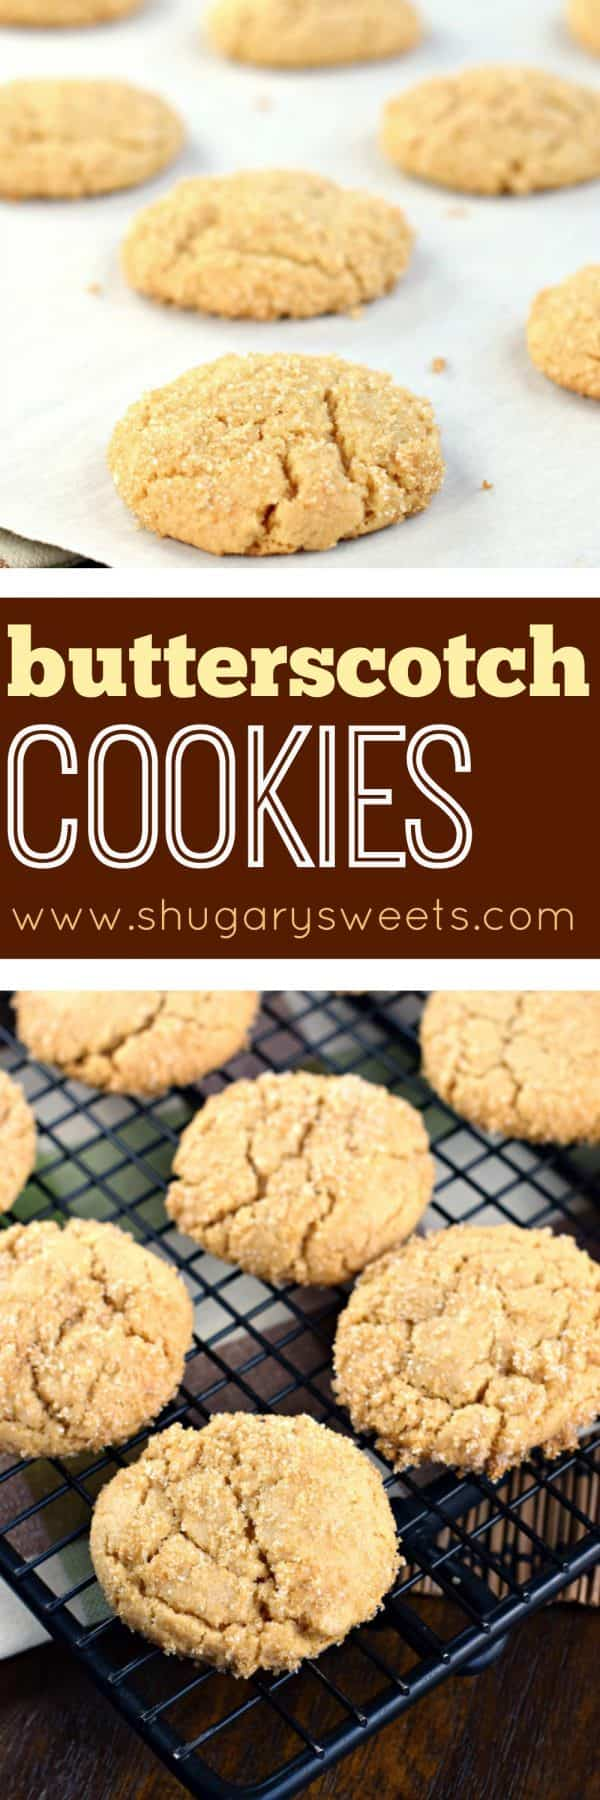 Chewy on the inside, crunchy on the outside, these Butterscotch Cookies only get better with time! You'll love the sugar coating!